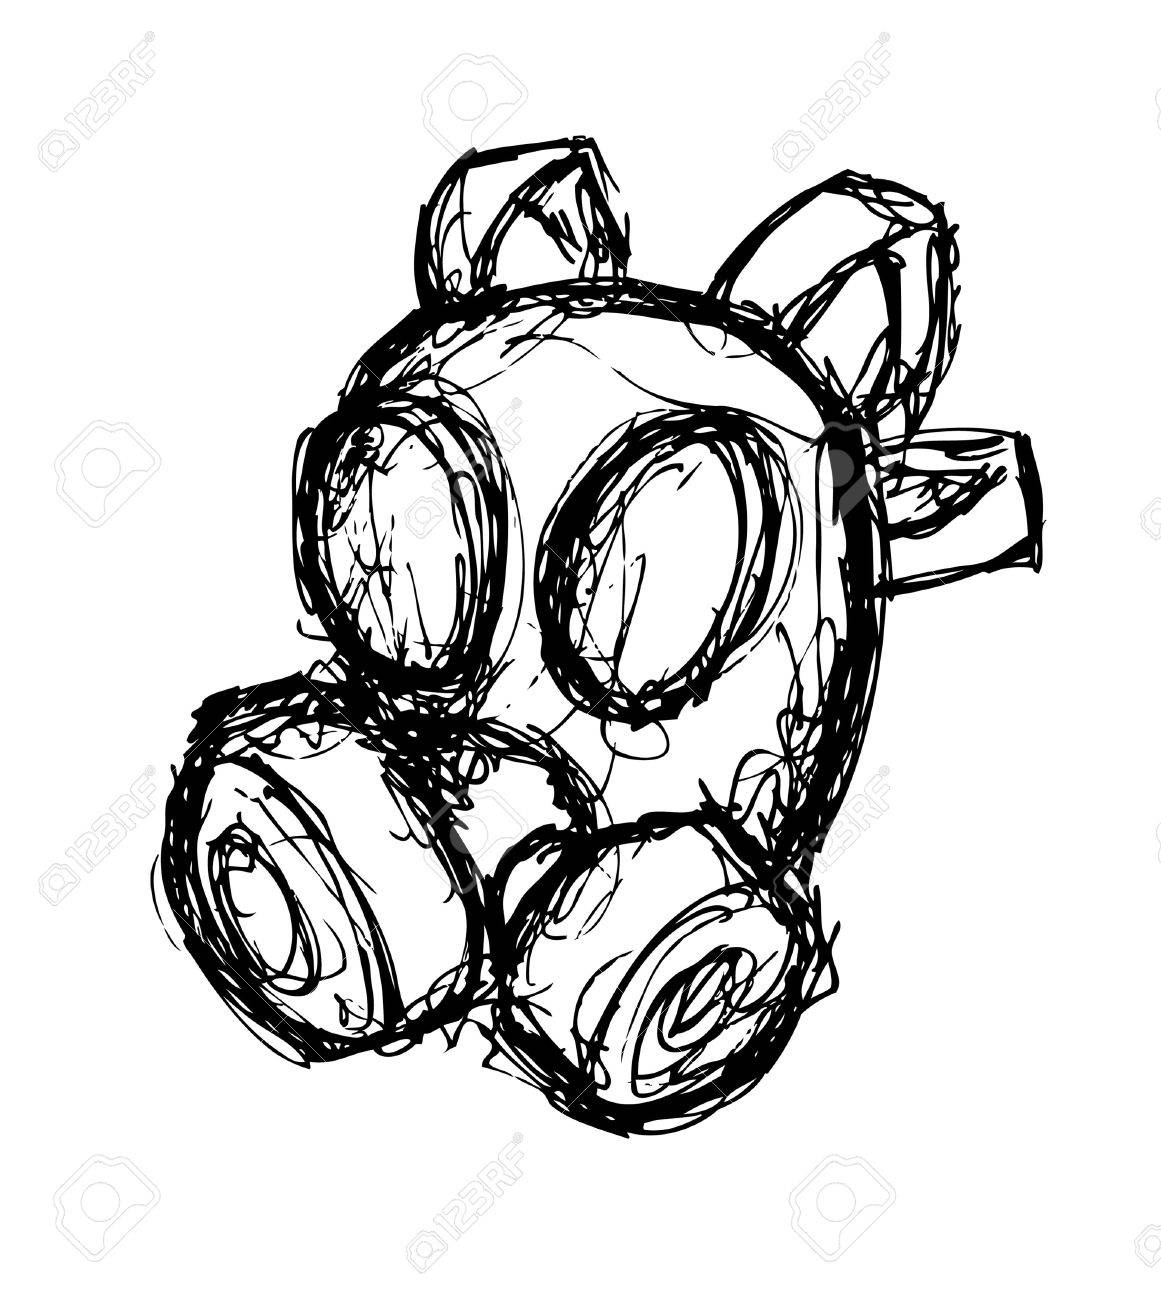 Oxygen Drawing At Free For Personal Use Molecule Diagram Images Pictures Becuo 1161x1300 Hand Drawn Mask Royalty Cliparts Vectors And Stock